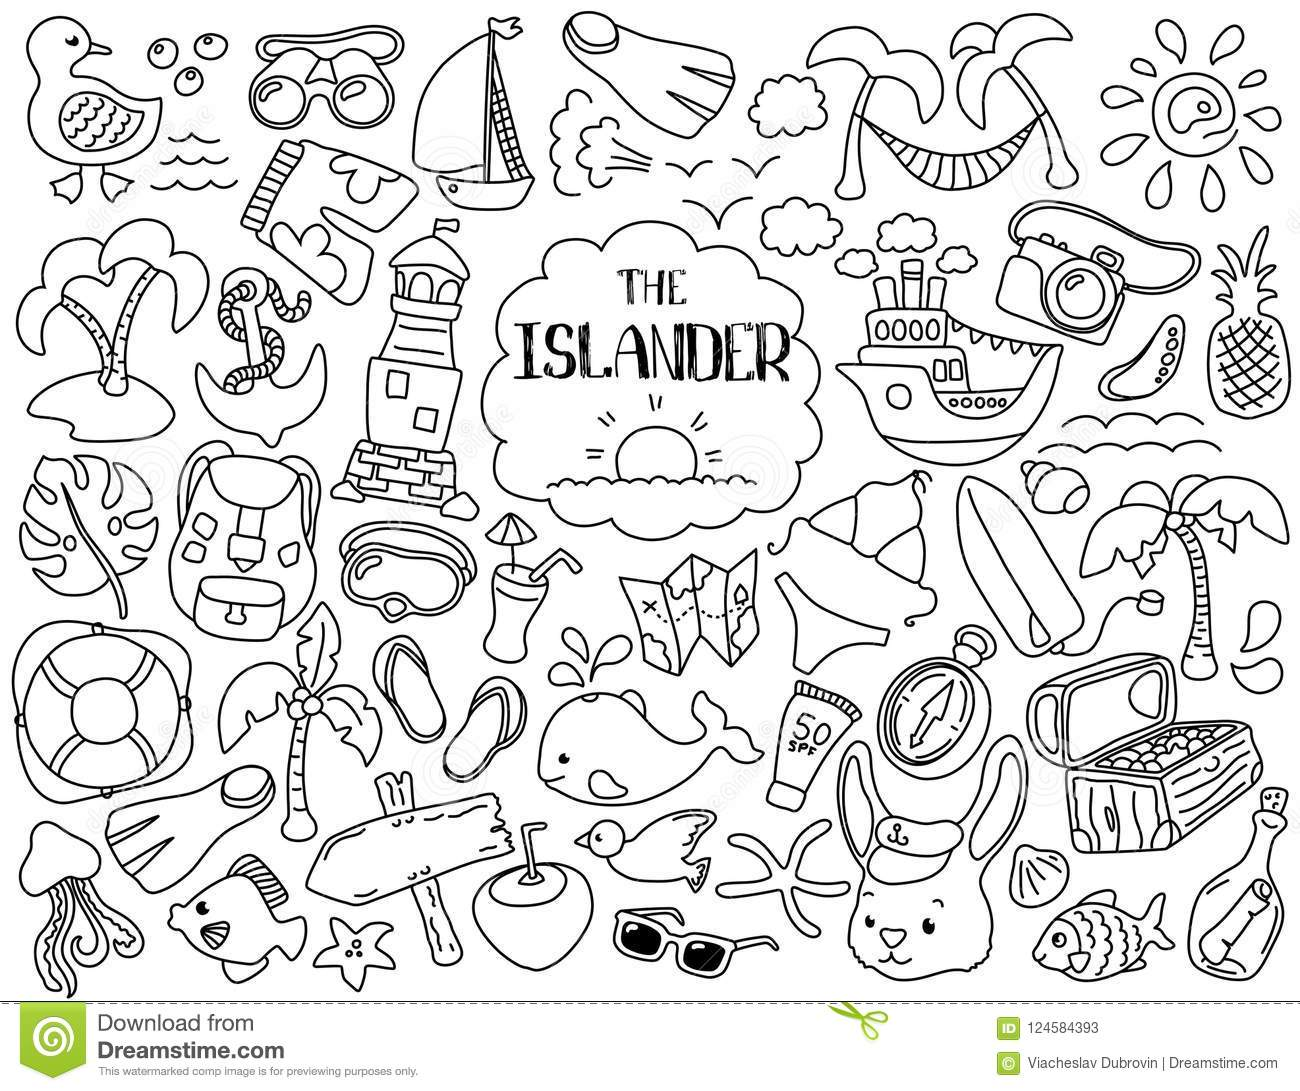 Tropical Vacation And Marine Travel Clipart Black Line Illustrations On White Background Stock Illustration Illustration Of Sail Doodle 124584393